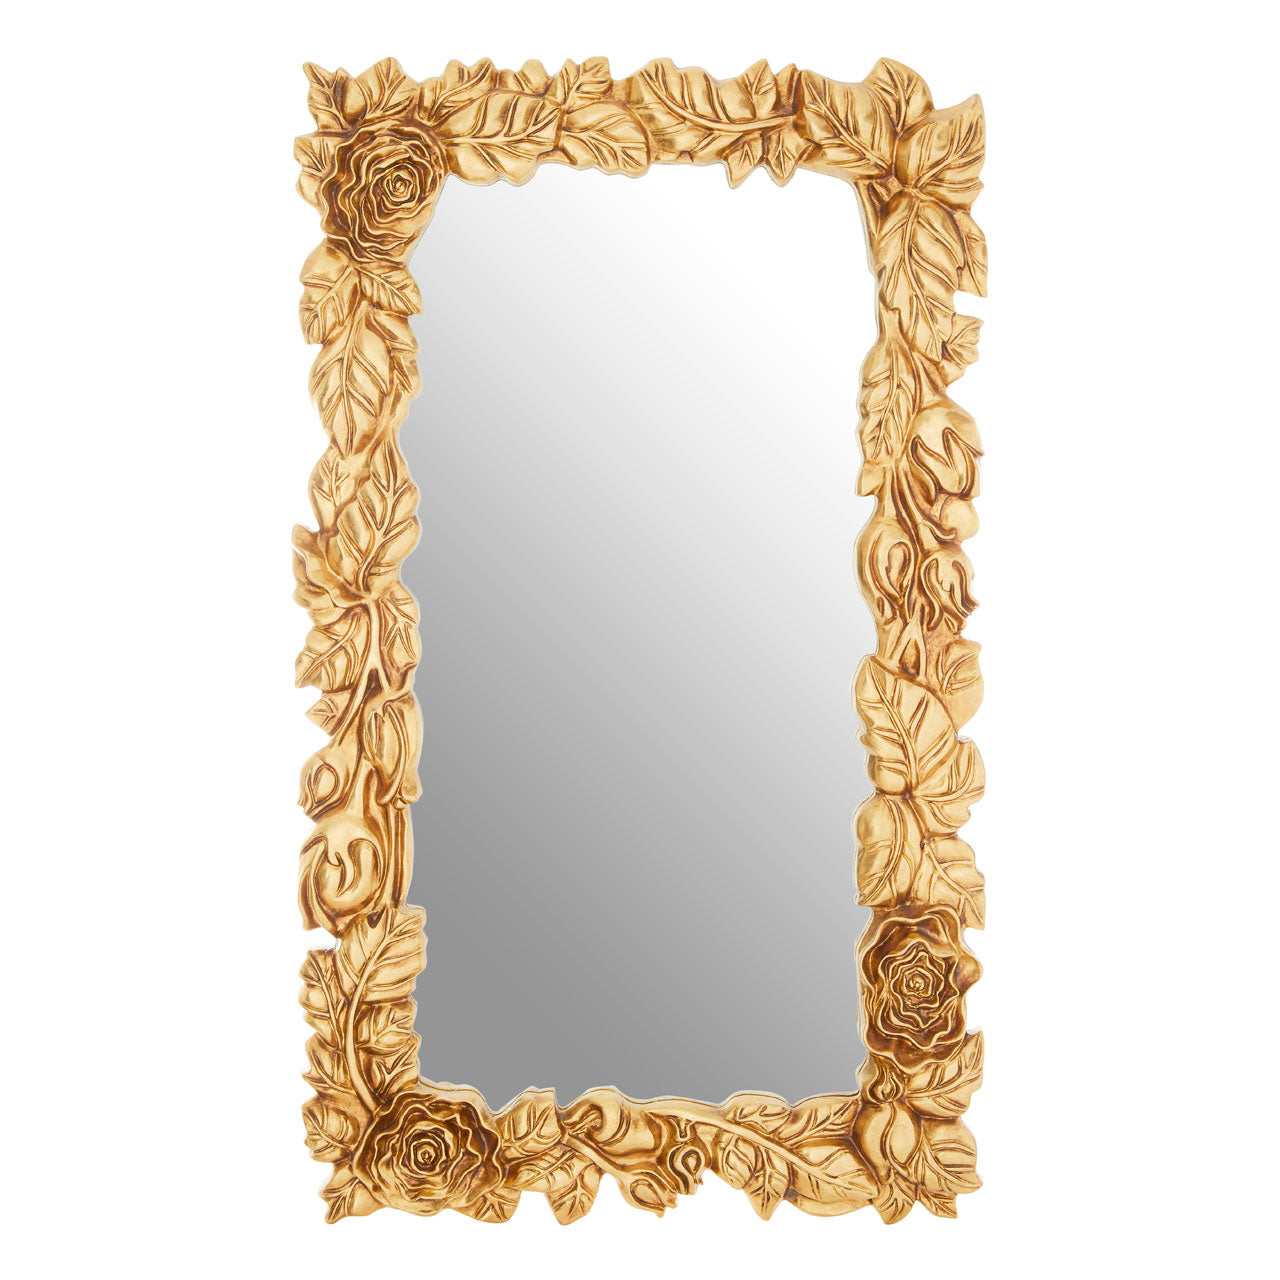 Marseille Leaf Wall Mirror Gold